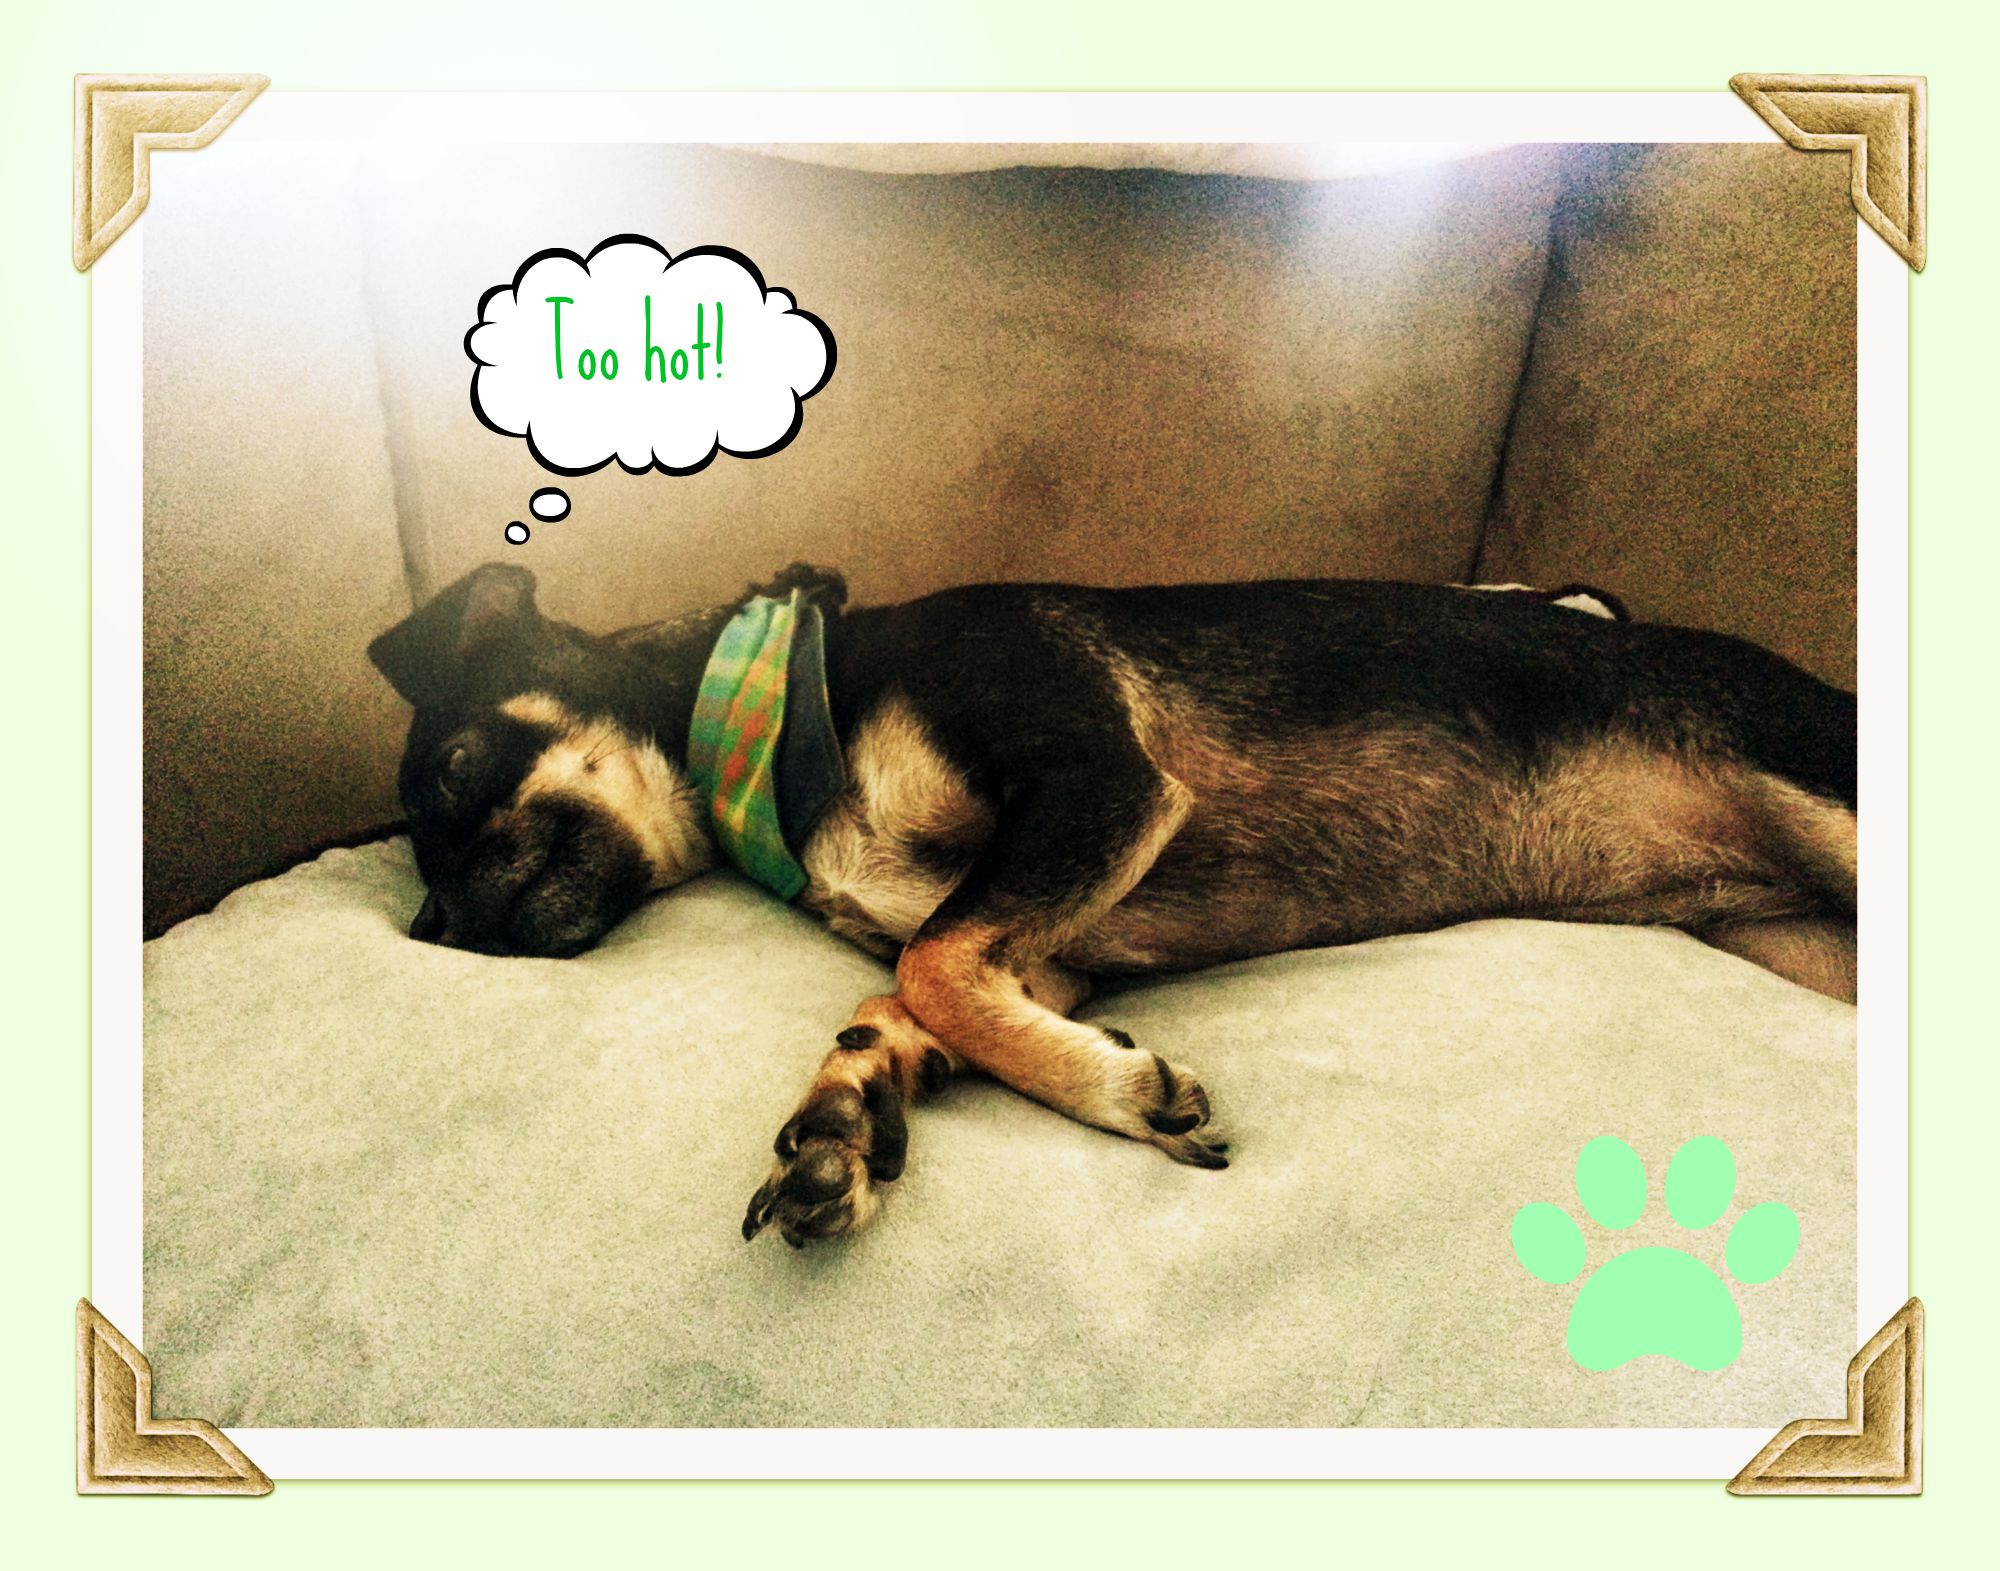 Rat Terrier Chihuahua Mix Sprawled on Couch